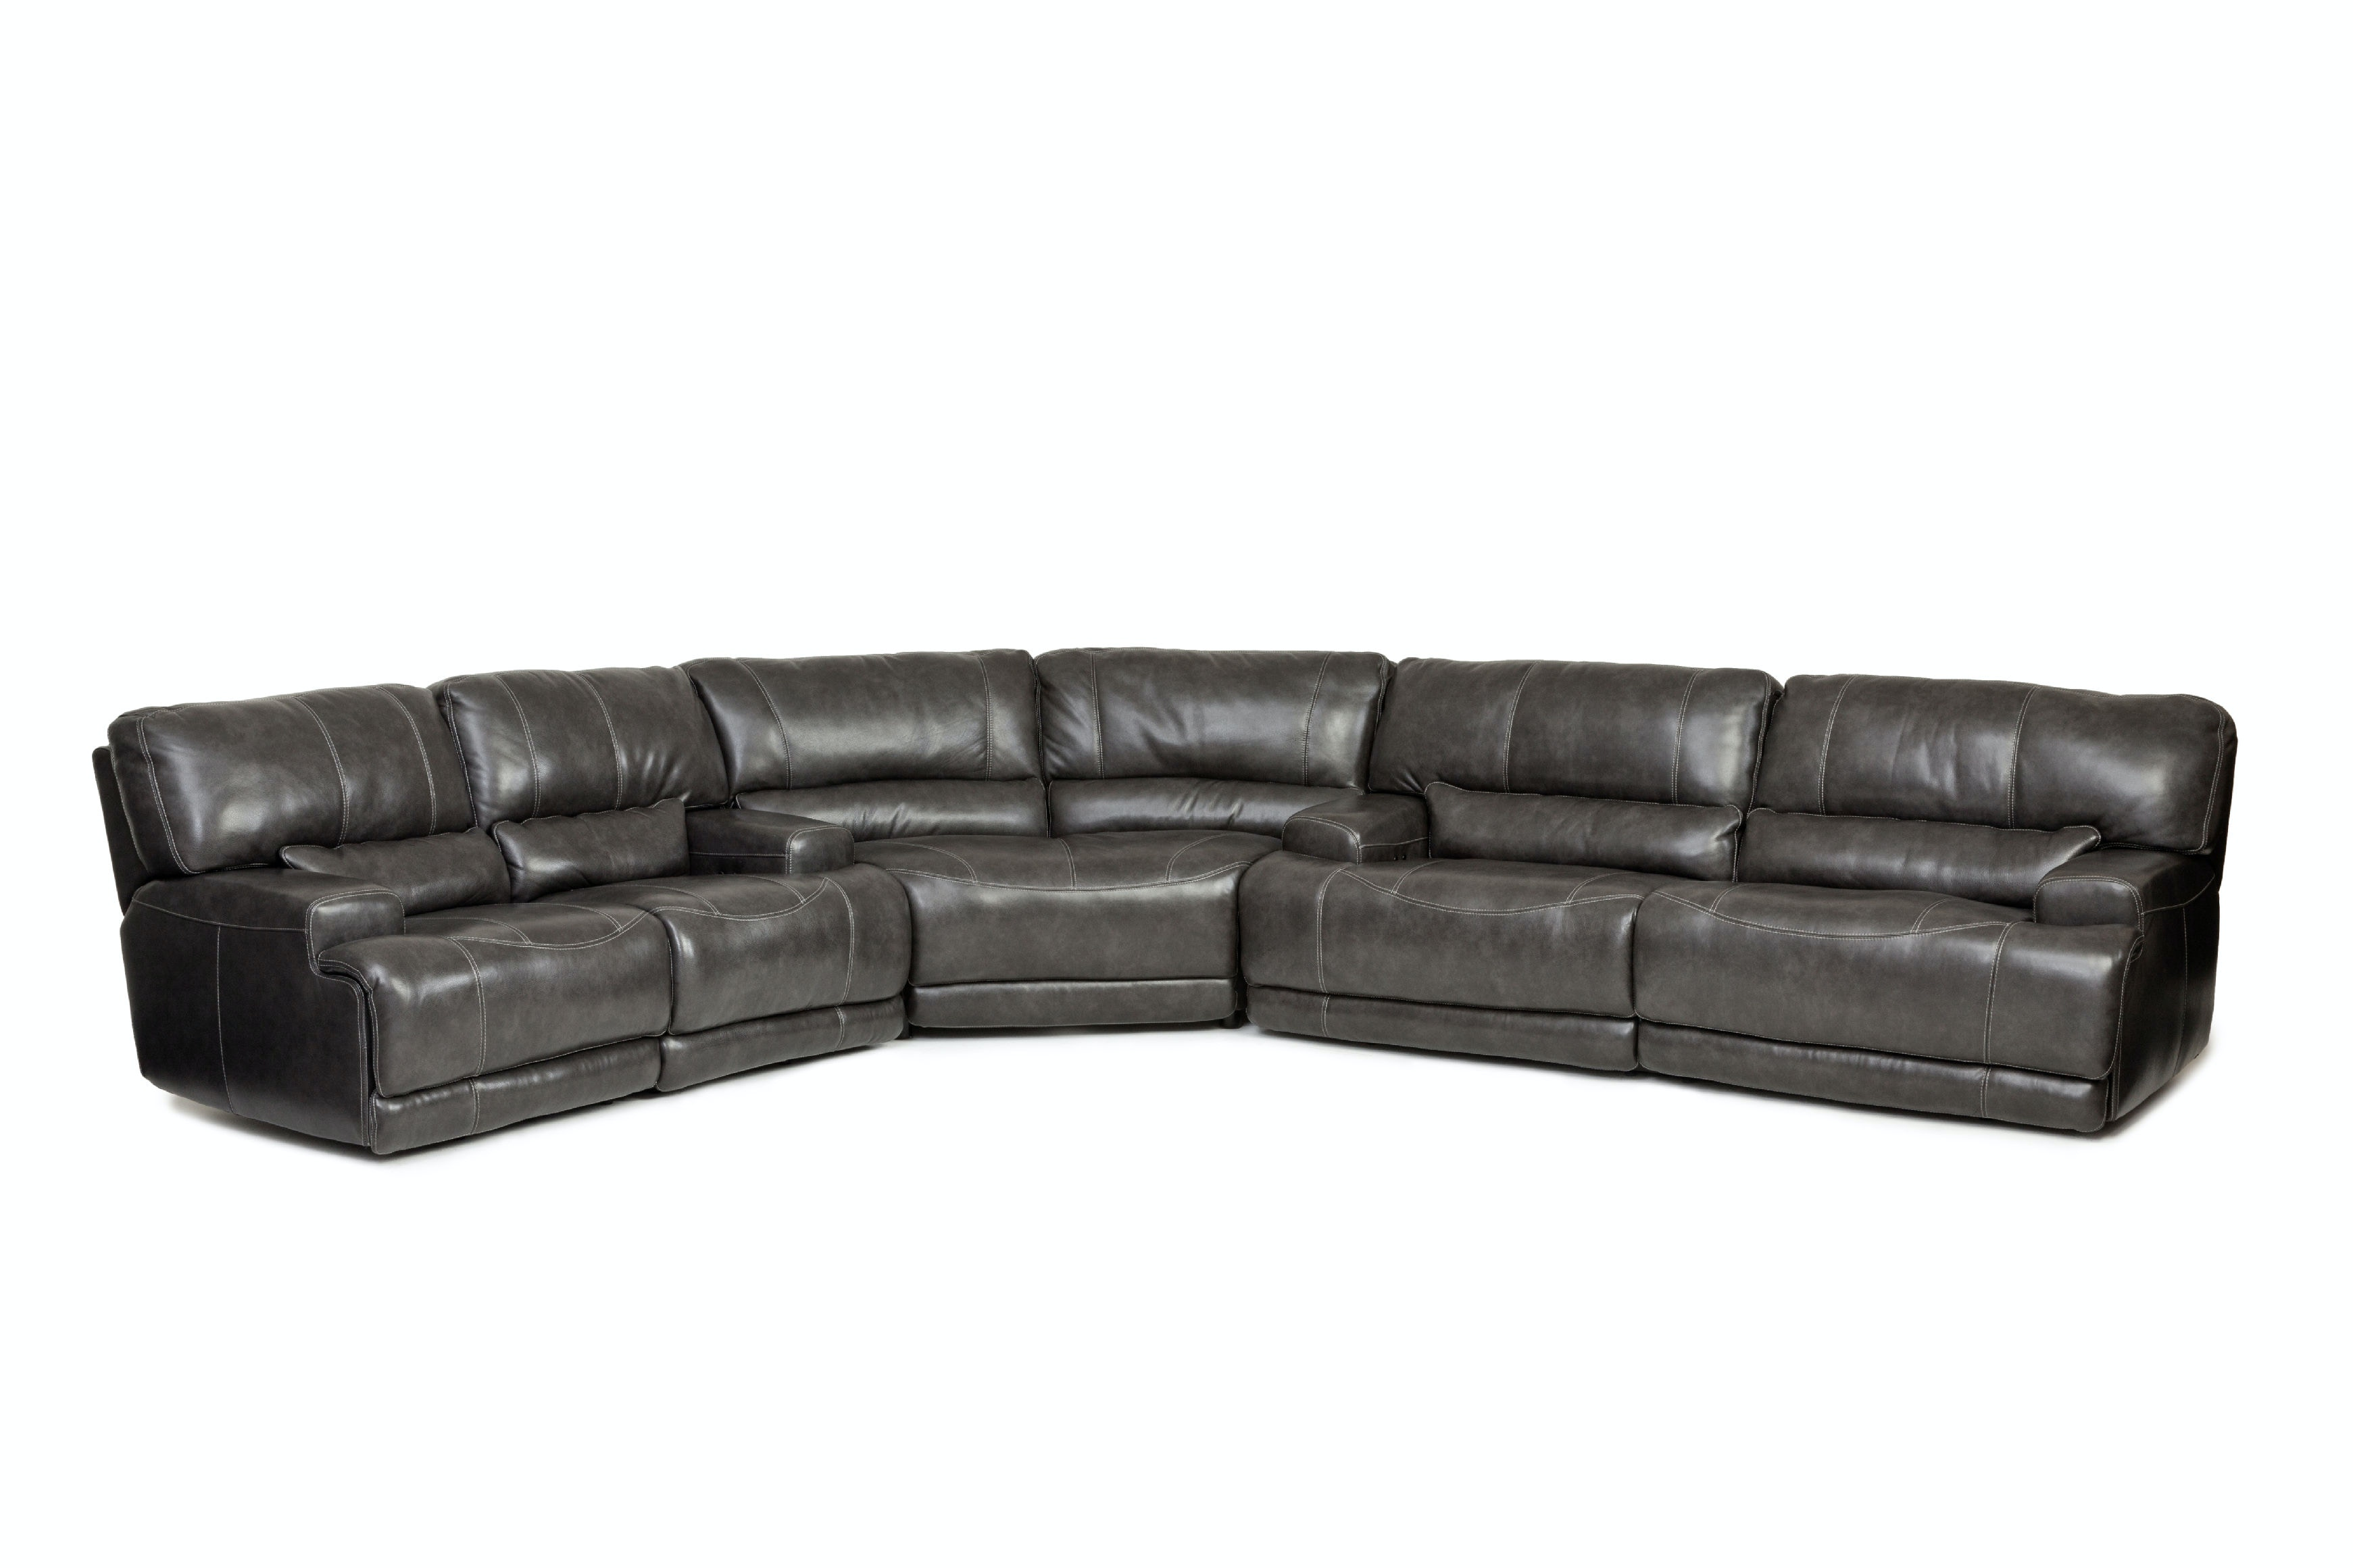 reclining sofa chair. Stampede Leather Power Reclining Sofa - CHARCOAL ST:422613 Reclining Sofa Chair